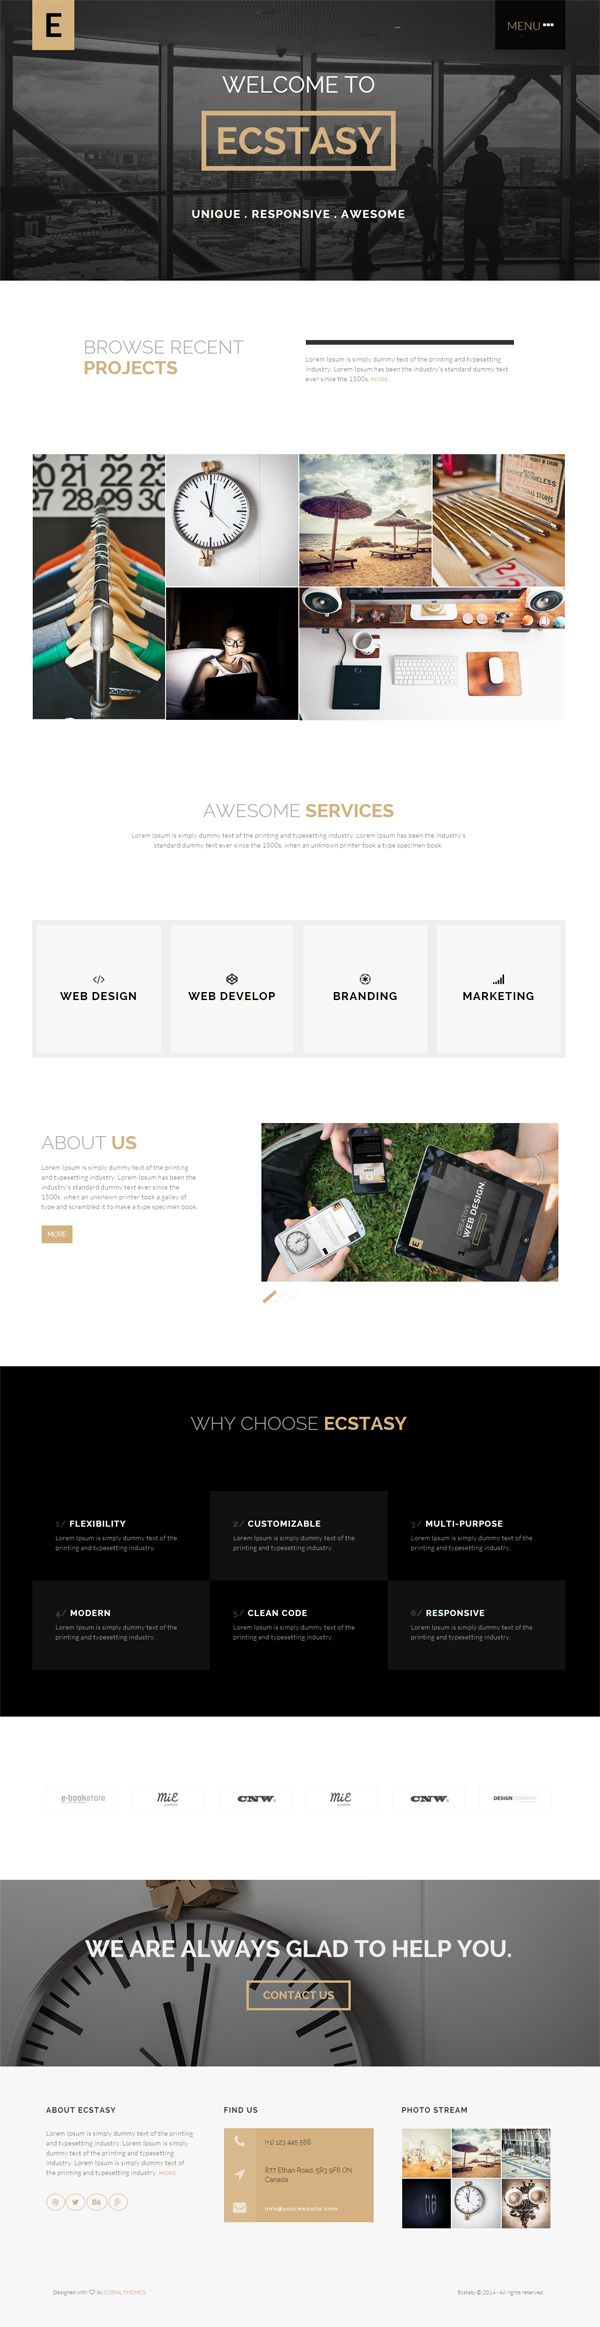 71 best #Web #Templates images on Pinterest | Role models ...